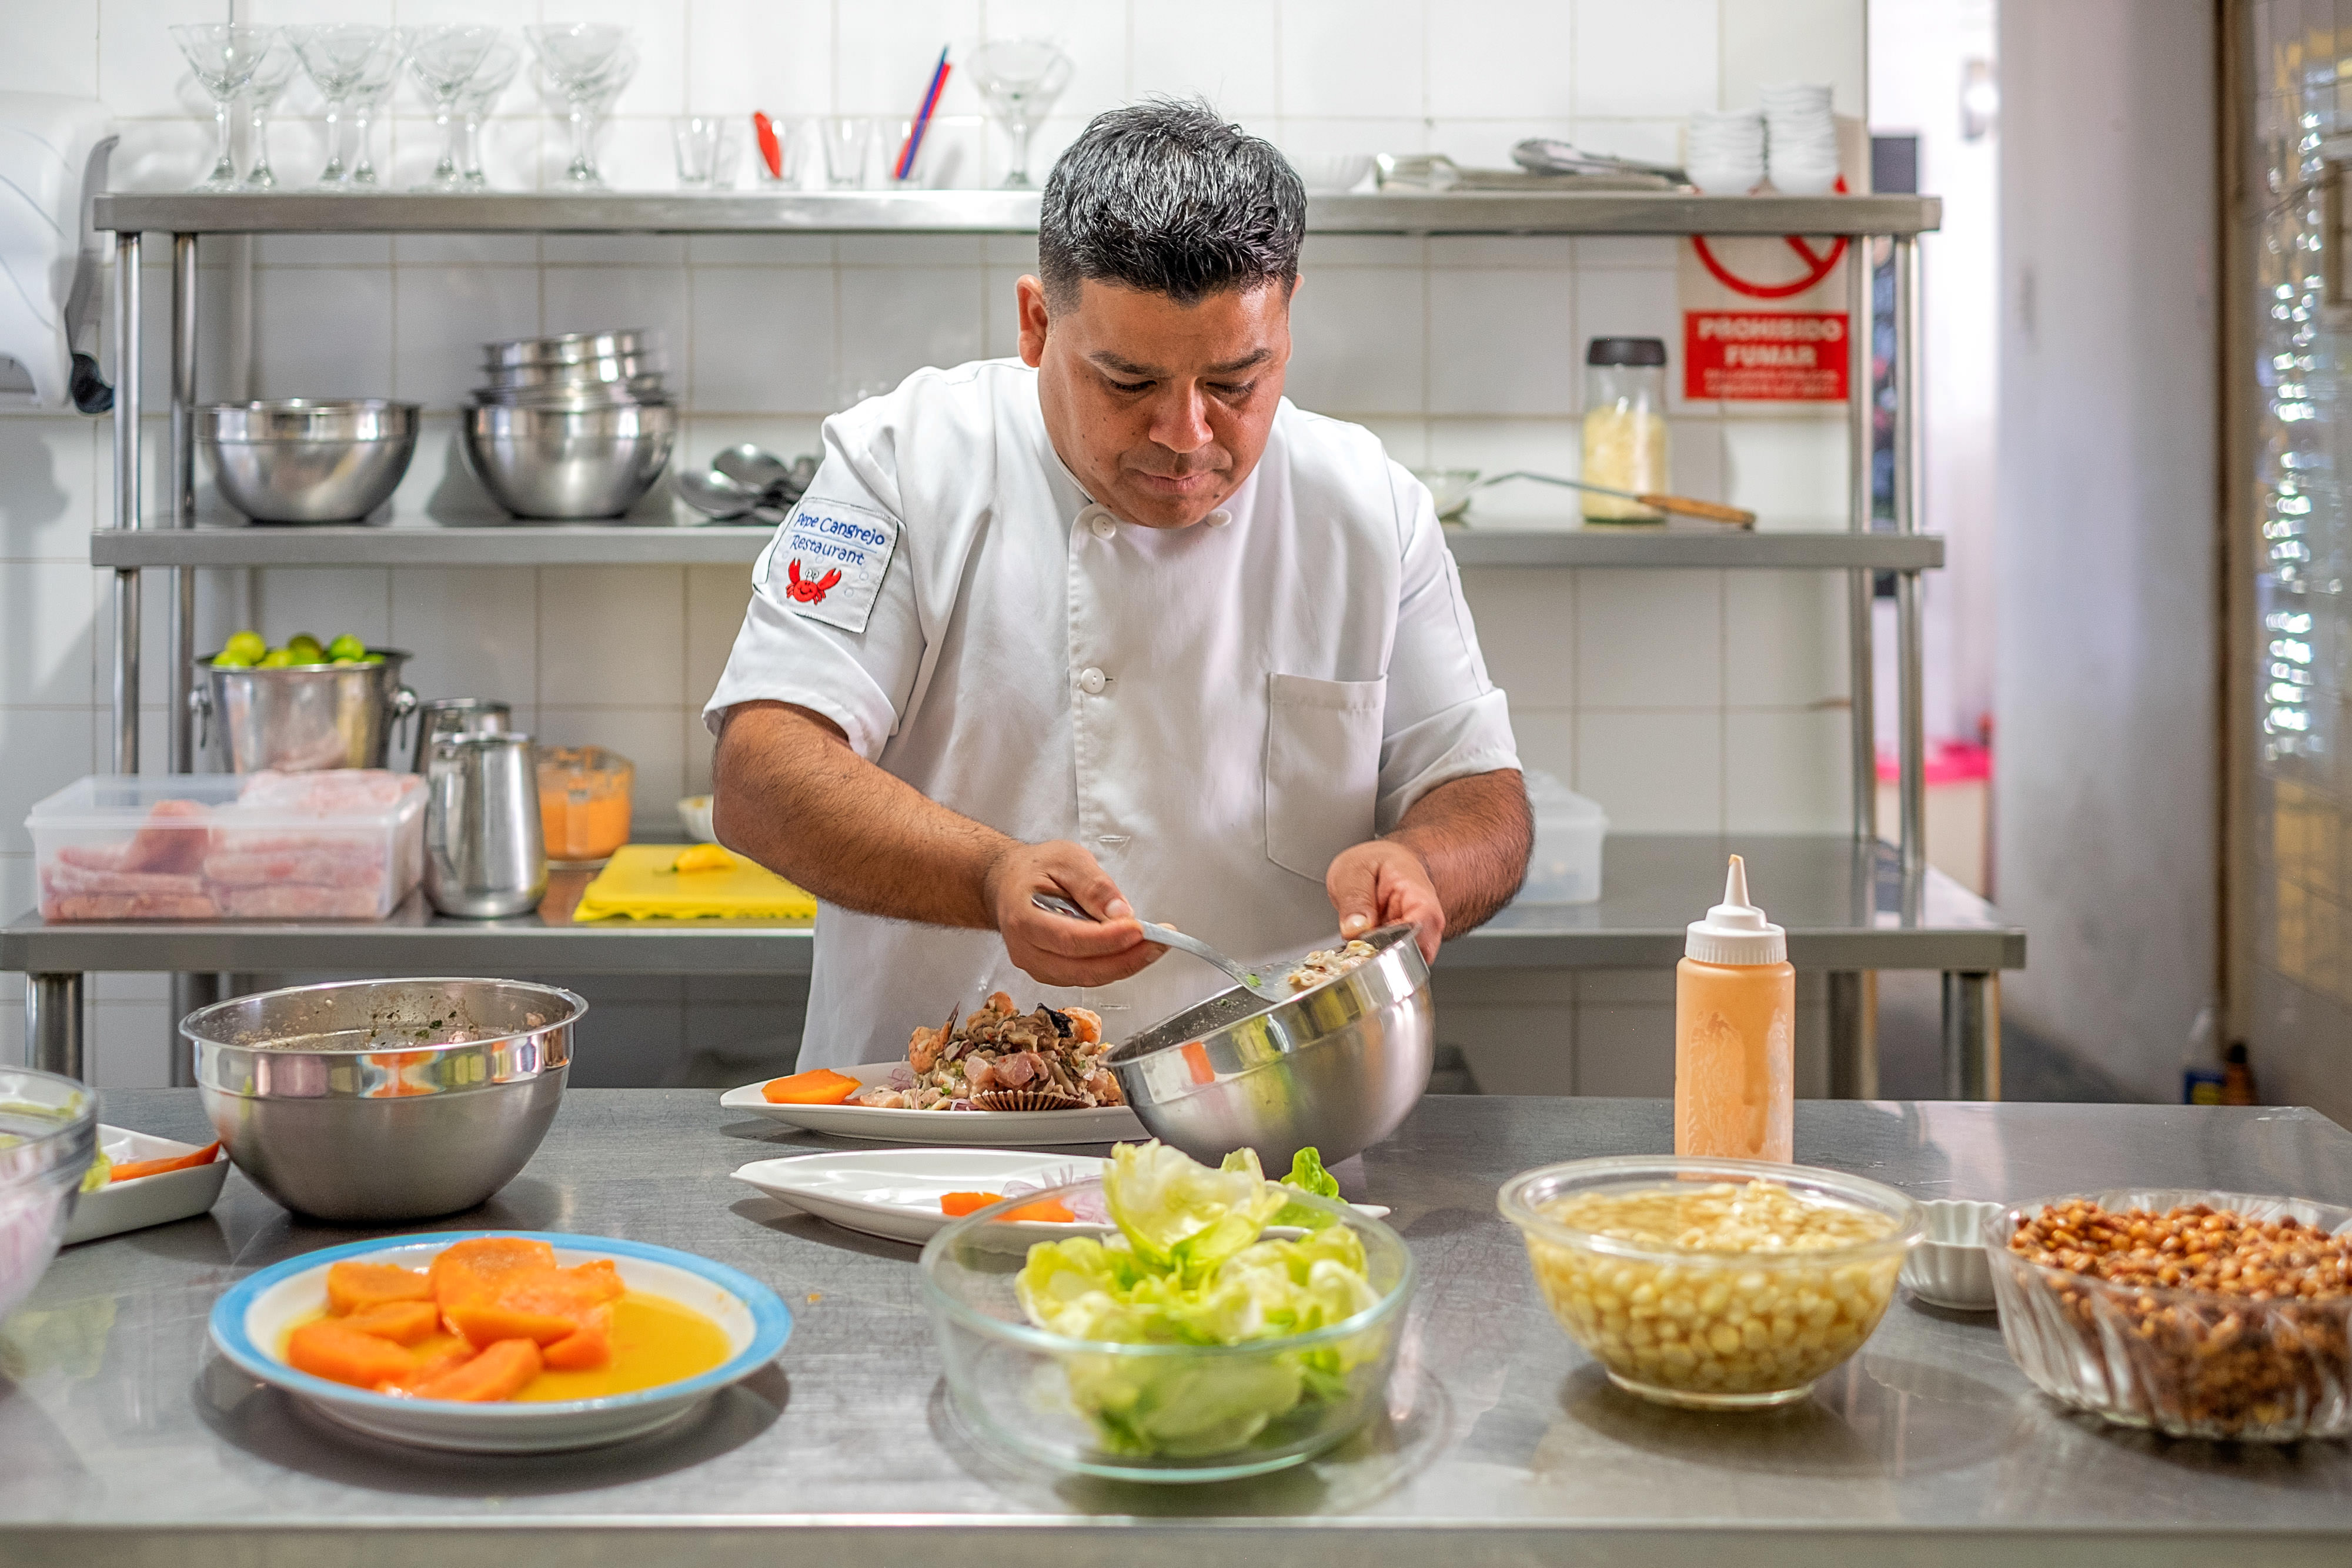 Chef Jose Fernandez owner of Pepe Cangrejo's restaurant, prepares ceviche.